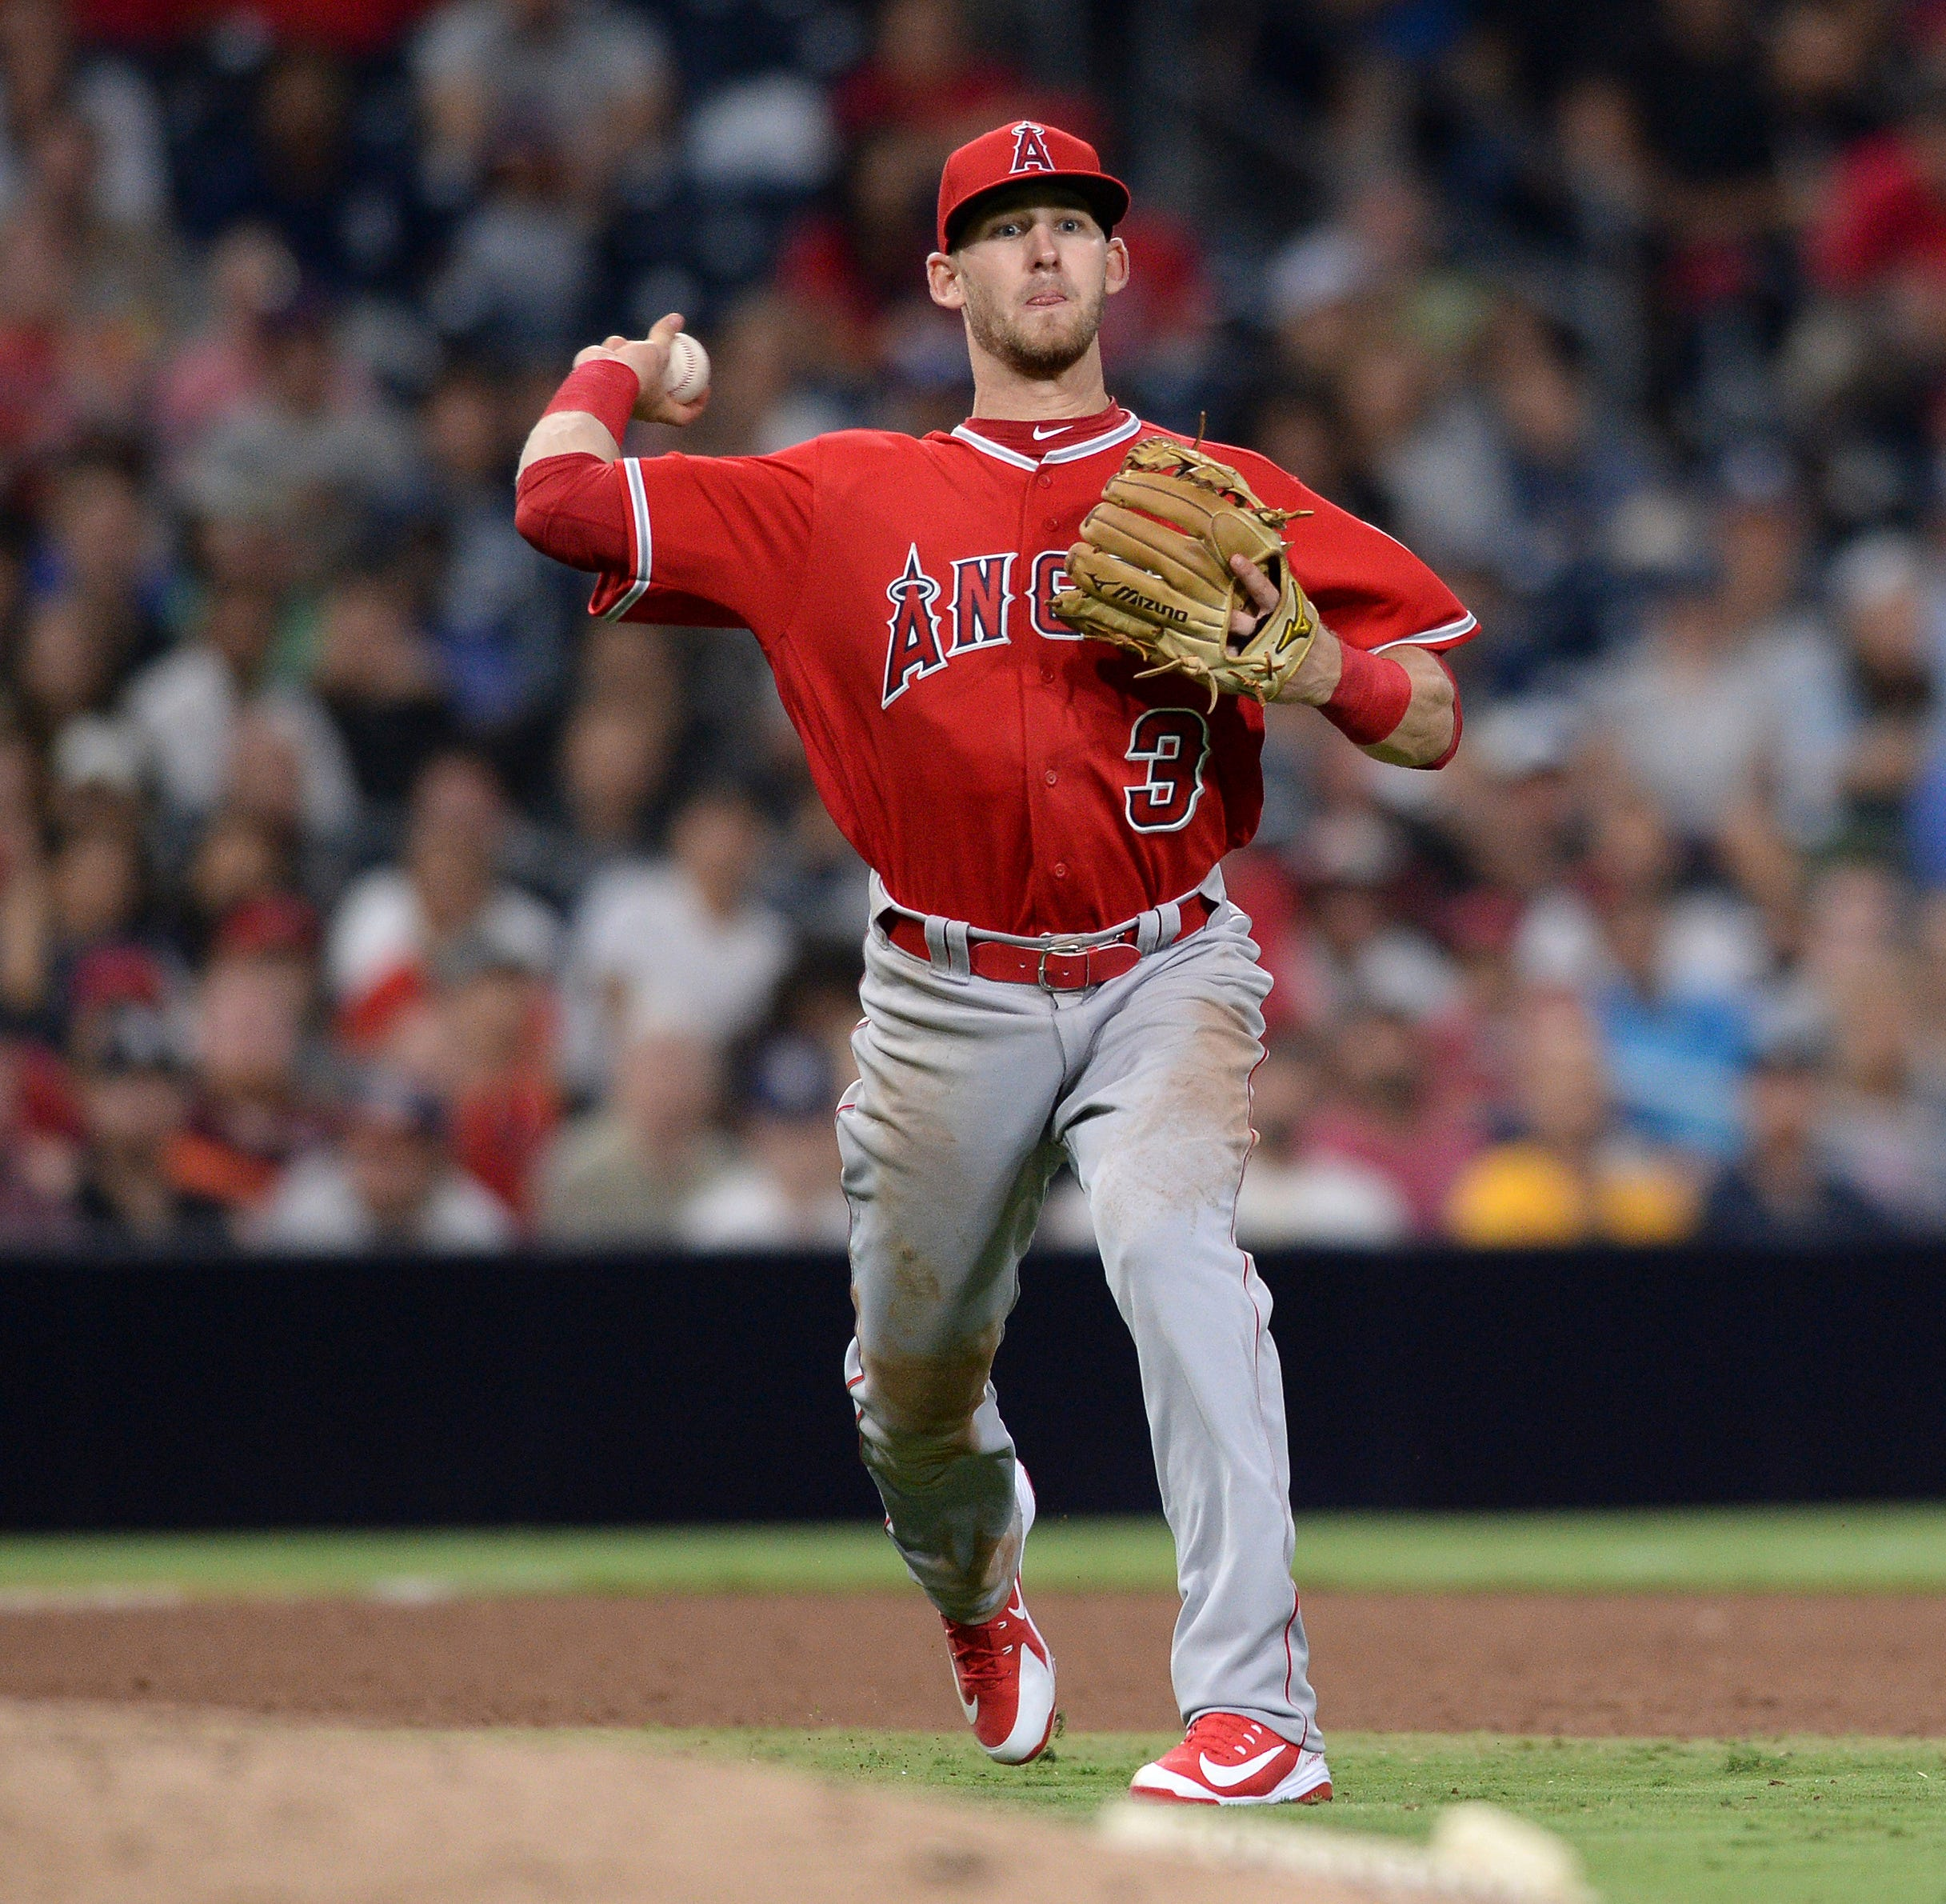 Shadow Hills product Taylor Ward makes splash with double, single, RBI, run in MLB debut